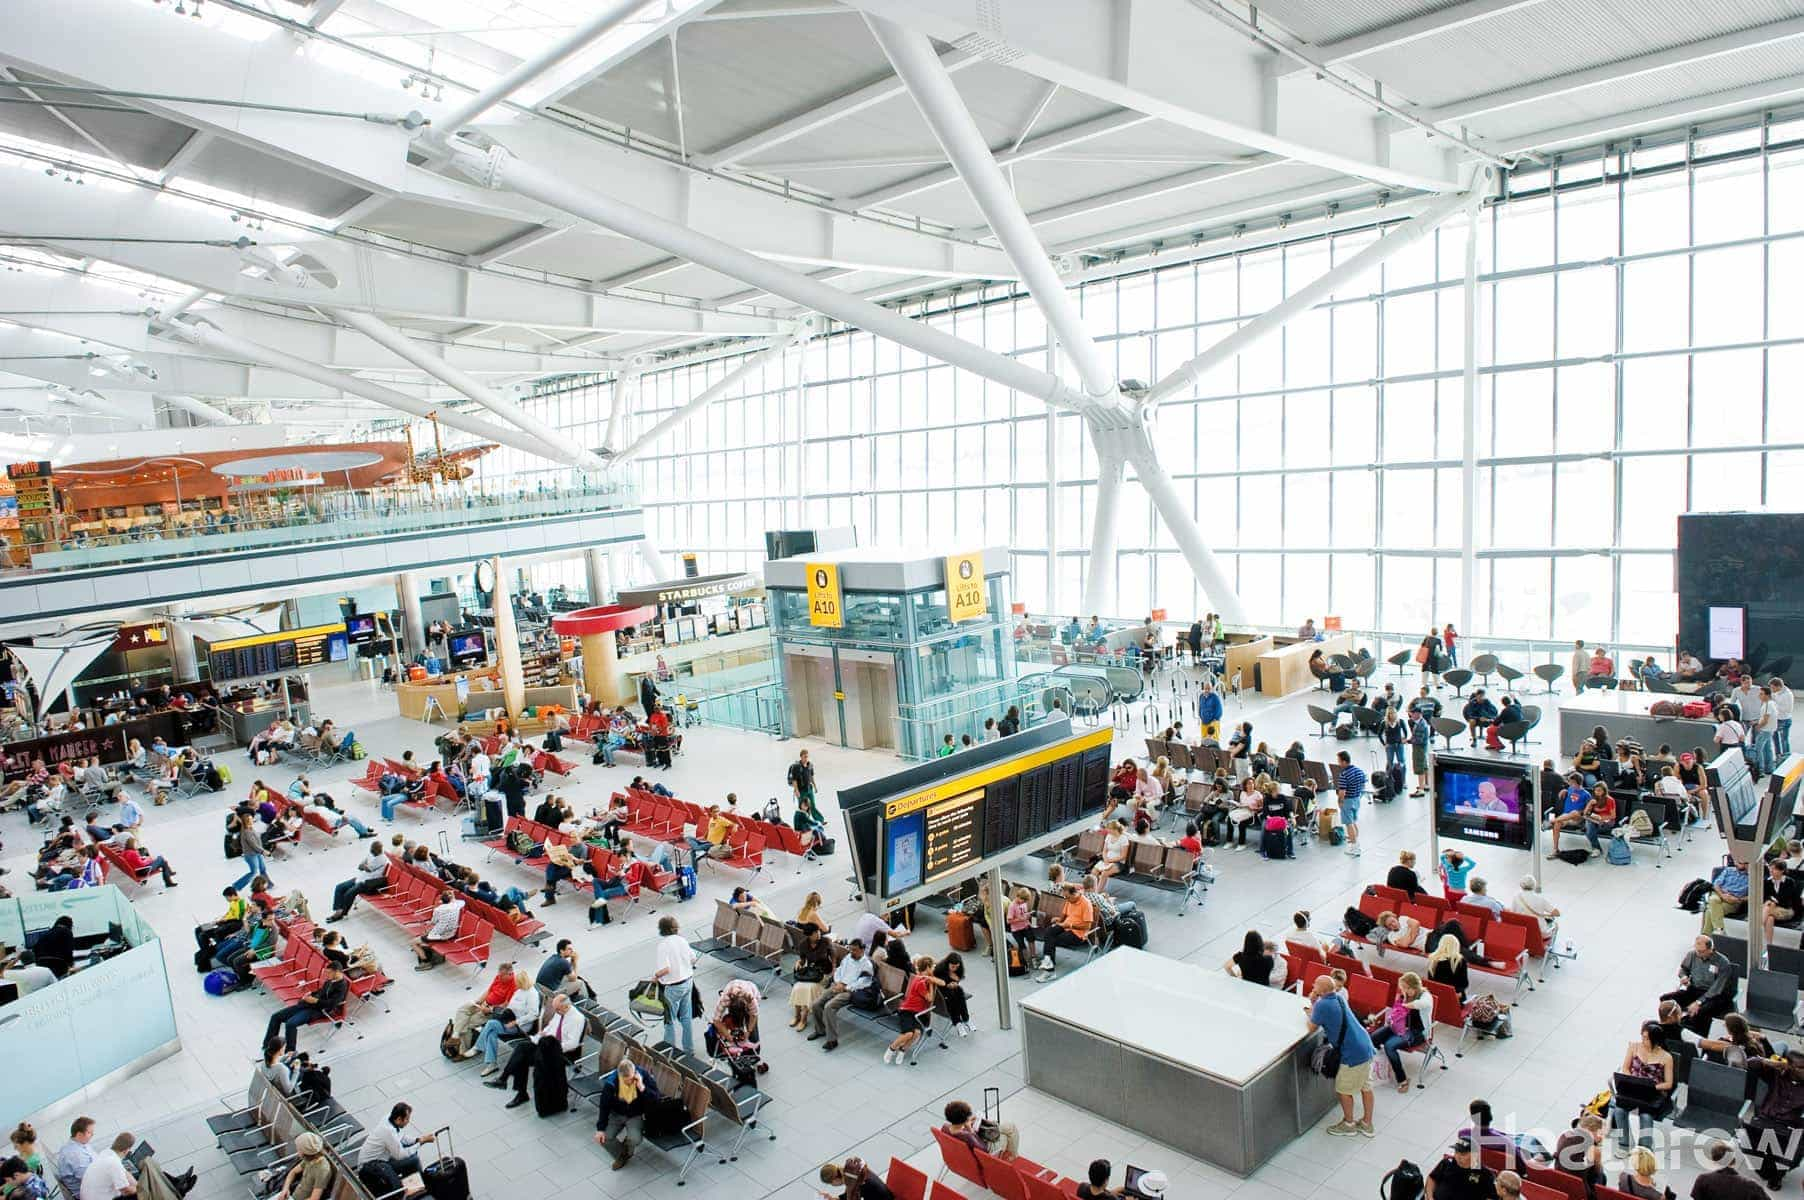 Ferrovial news Heathrow Airport, Terminal 5A, airside, departure lounge,